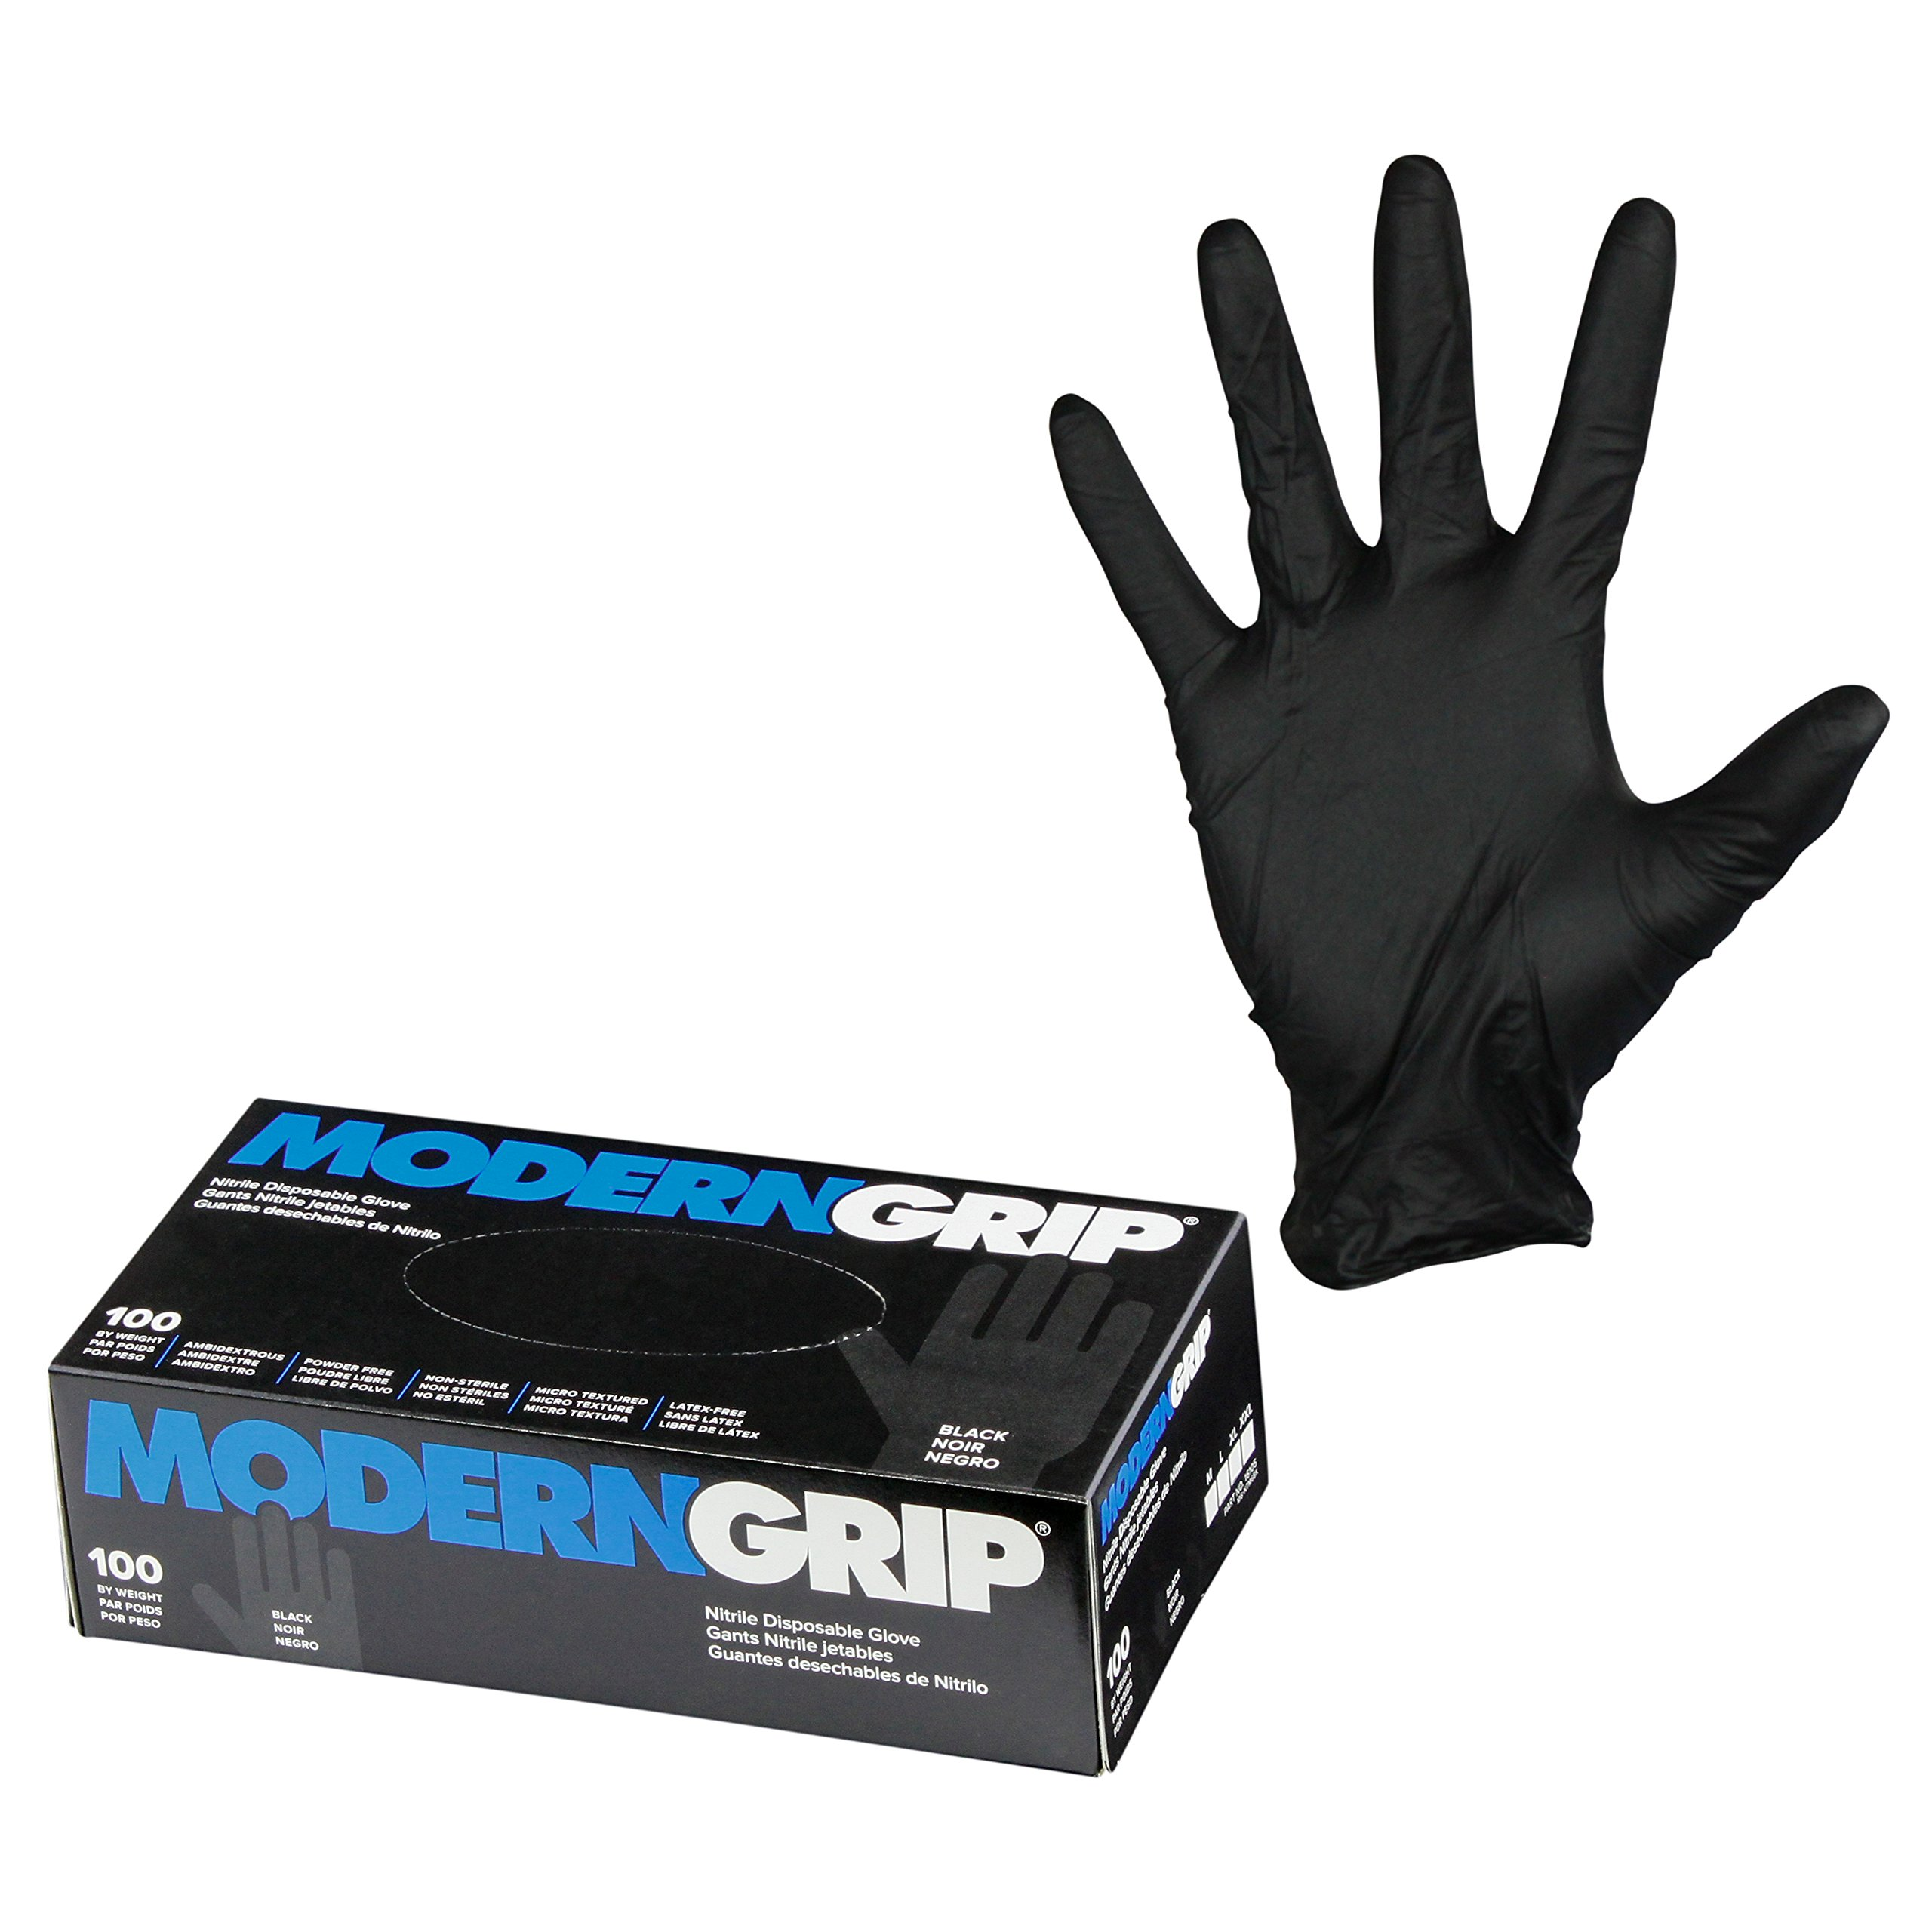 Modern Grip 16105-L Nitrile 6 mil Thickness Premium Disposable Gloves – Industrial and Household, Powder Free, Latex Free, Micro Textured for Superior Grip - Black - Large (100 count) by Modern Grip